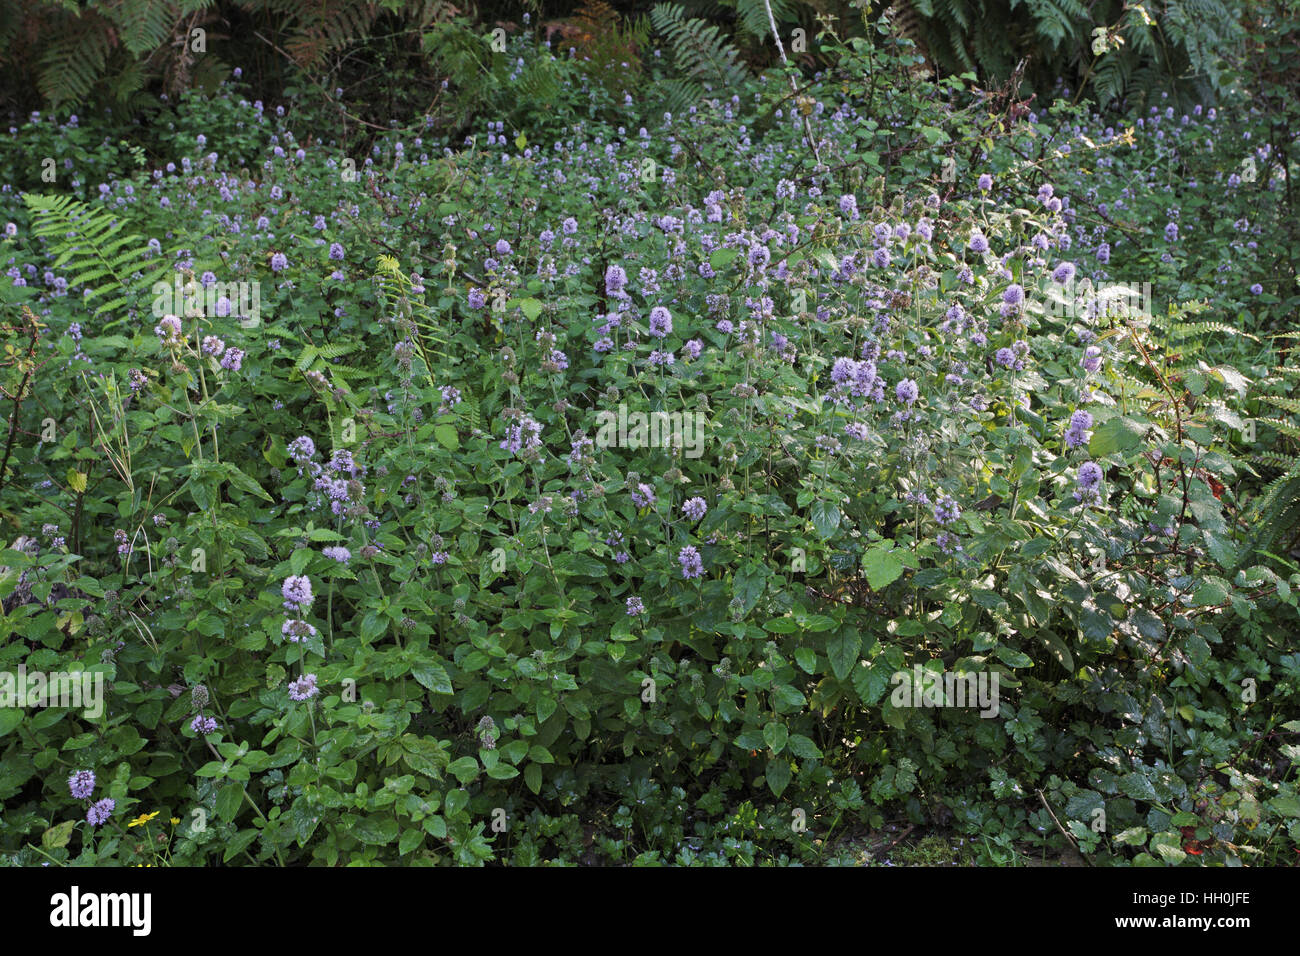 Water mint Mentha aquatica growing en masse in a wet area beside a track New Forest National Park Hampshire England Stock Photo